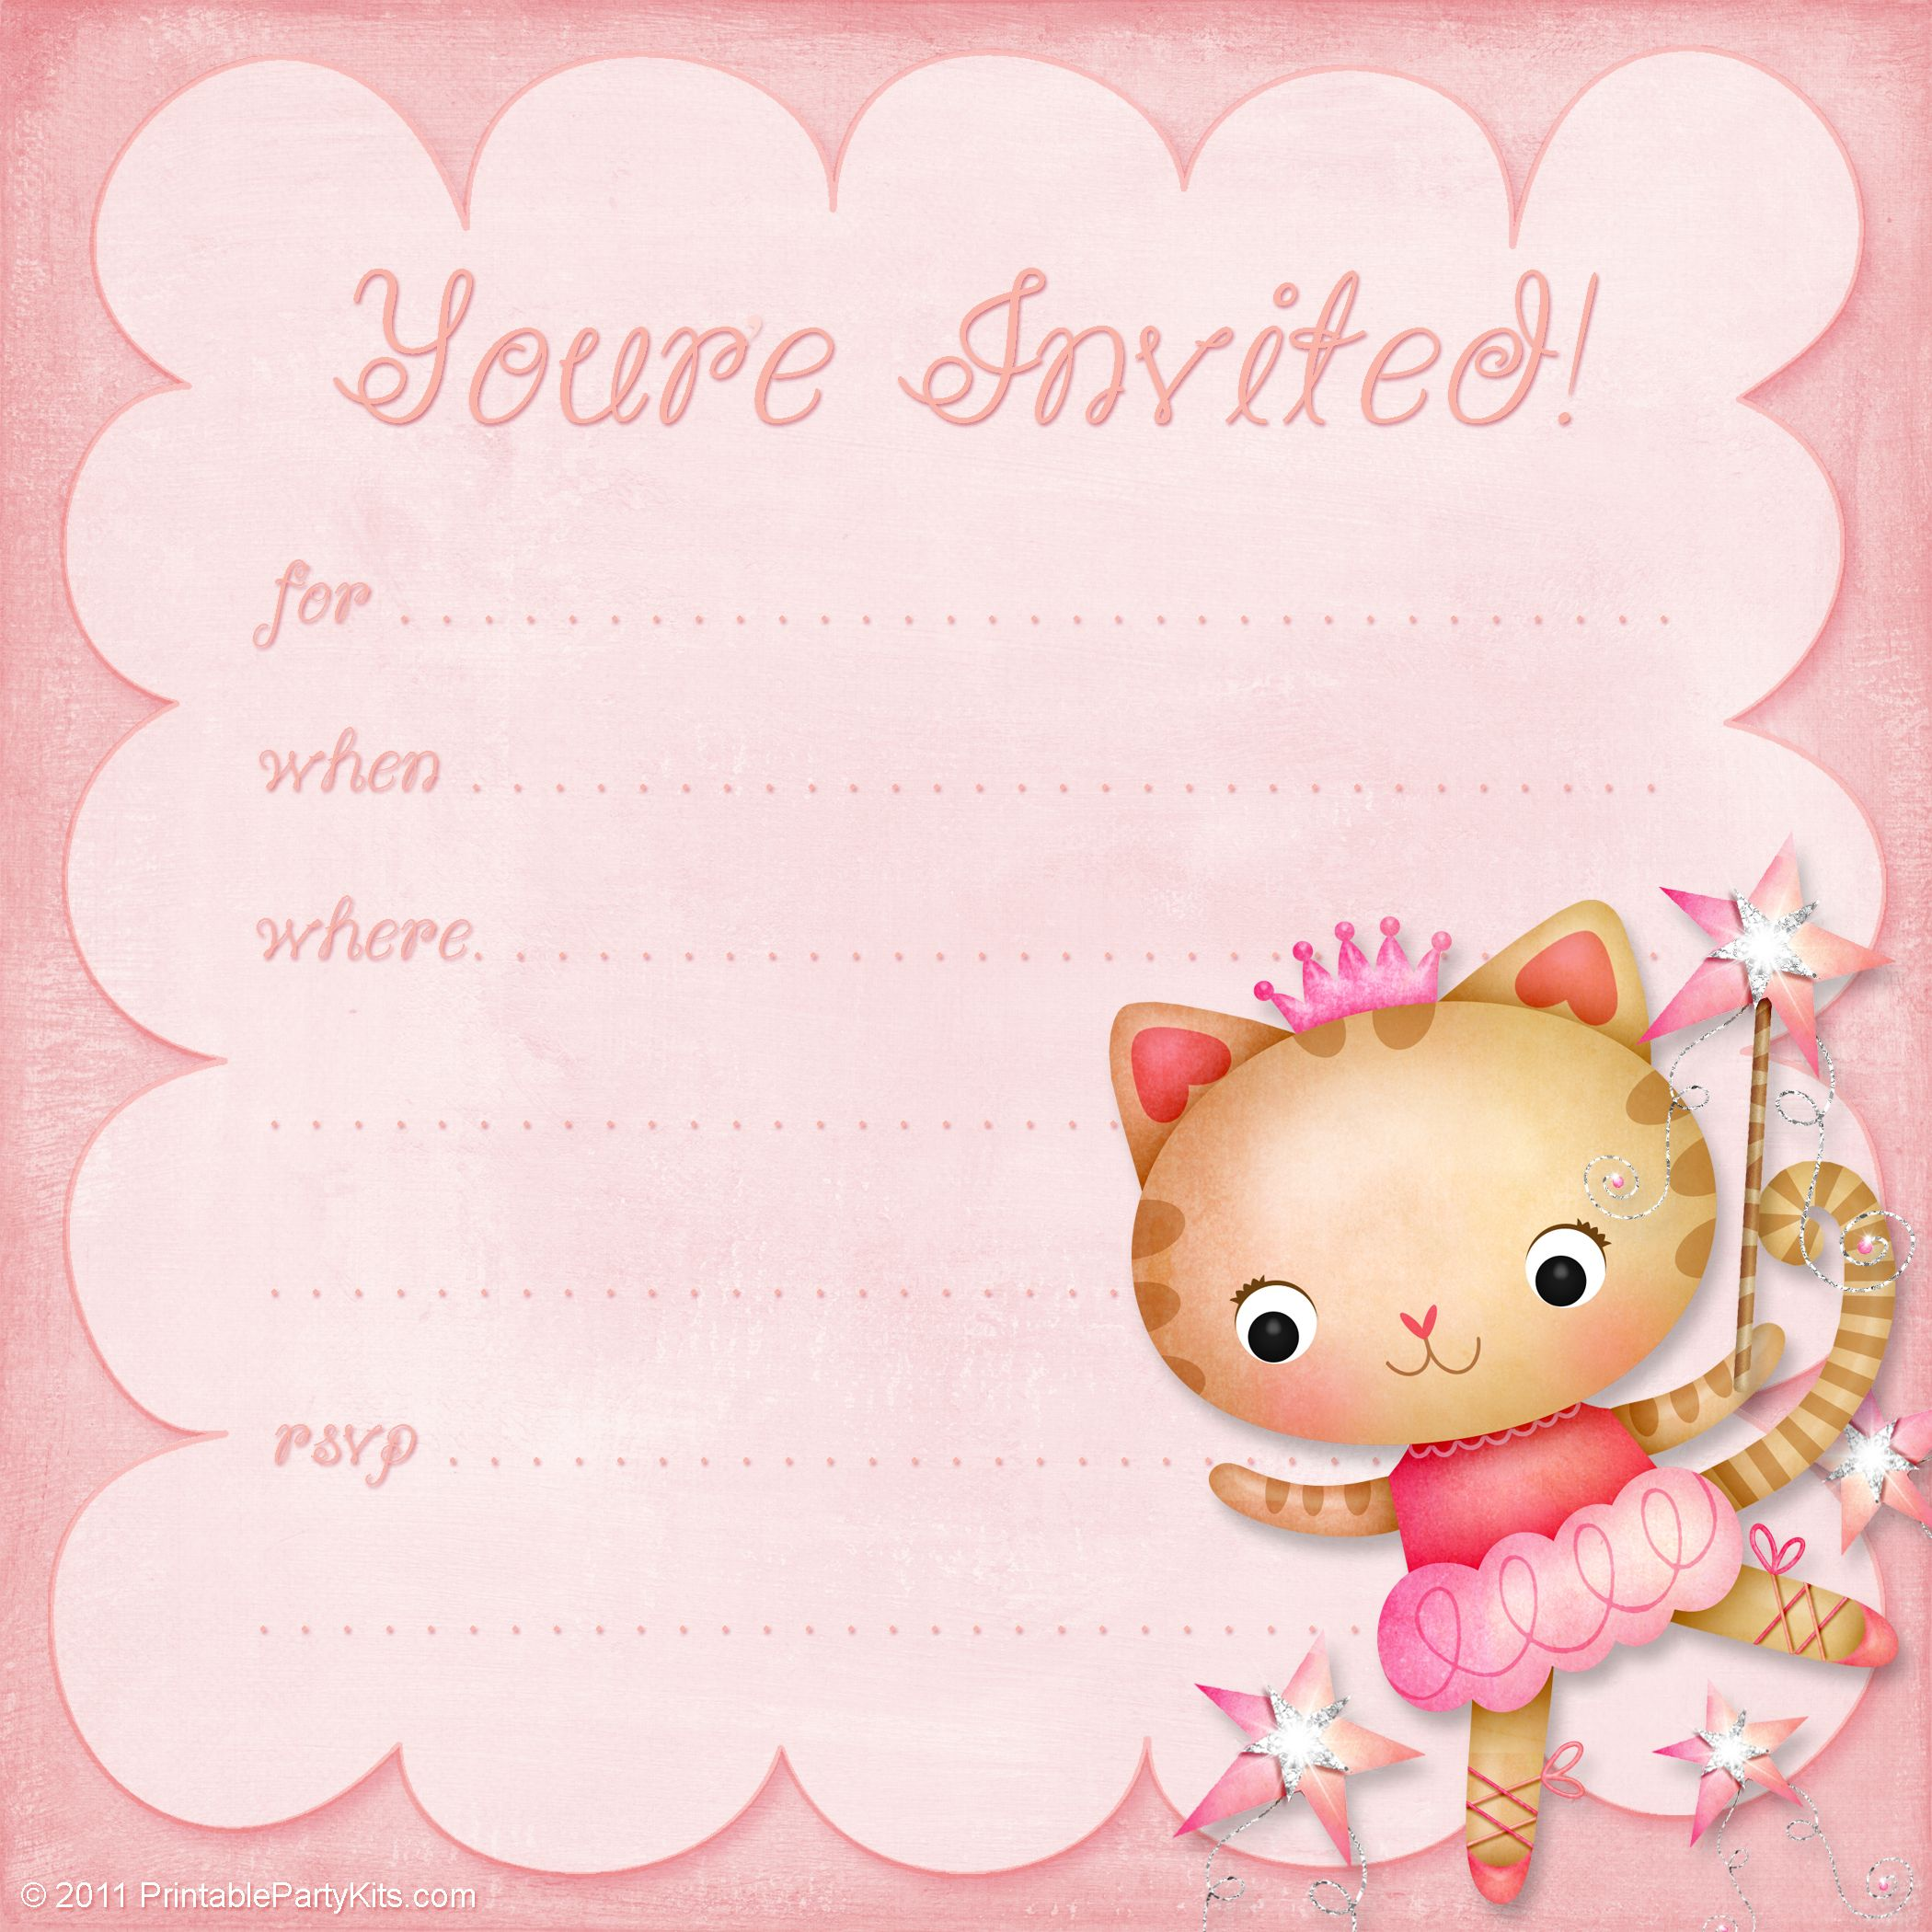 Free Birthday Party Invitation Template – Dancing Baby Birthday Card